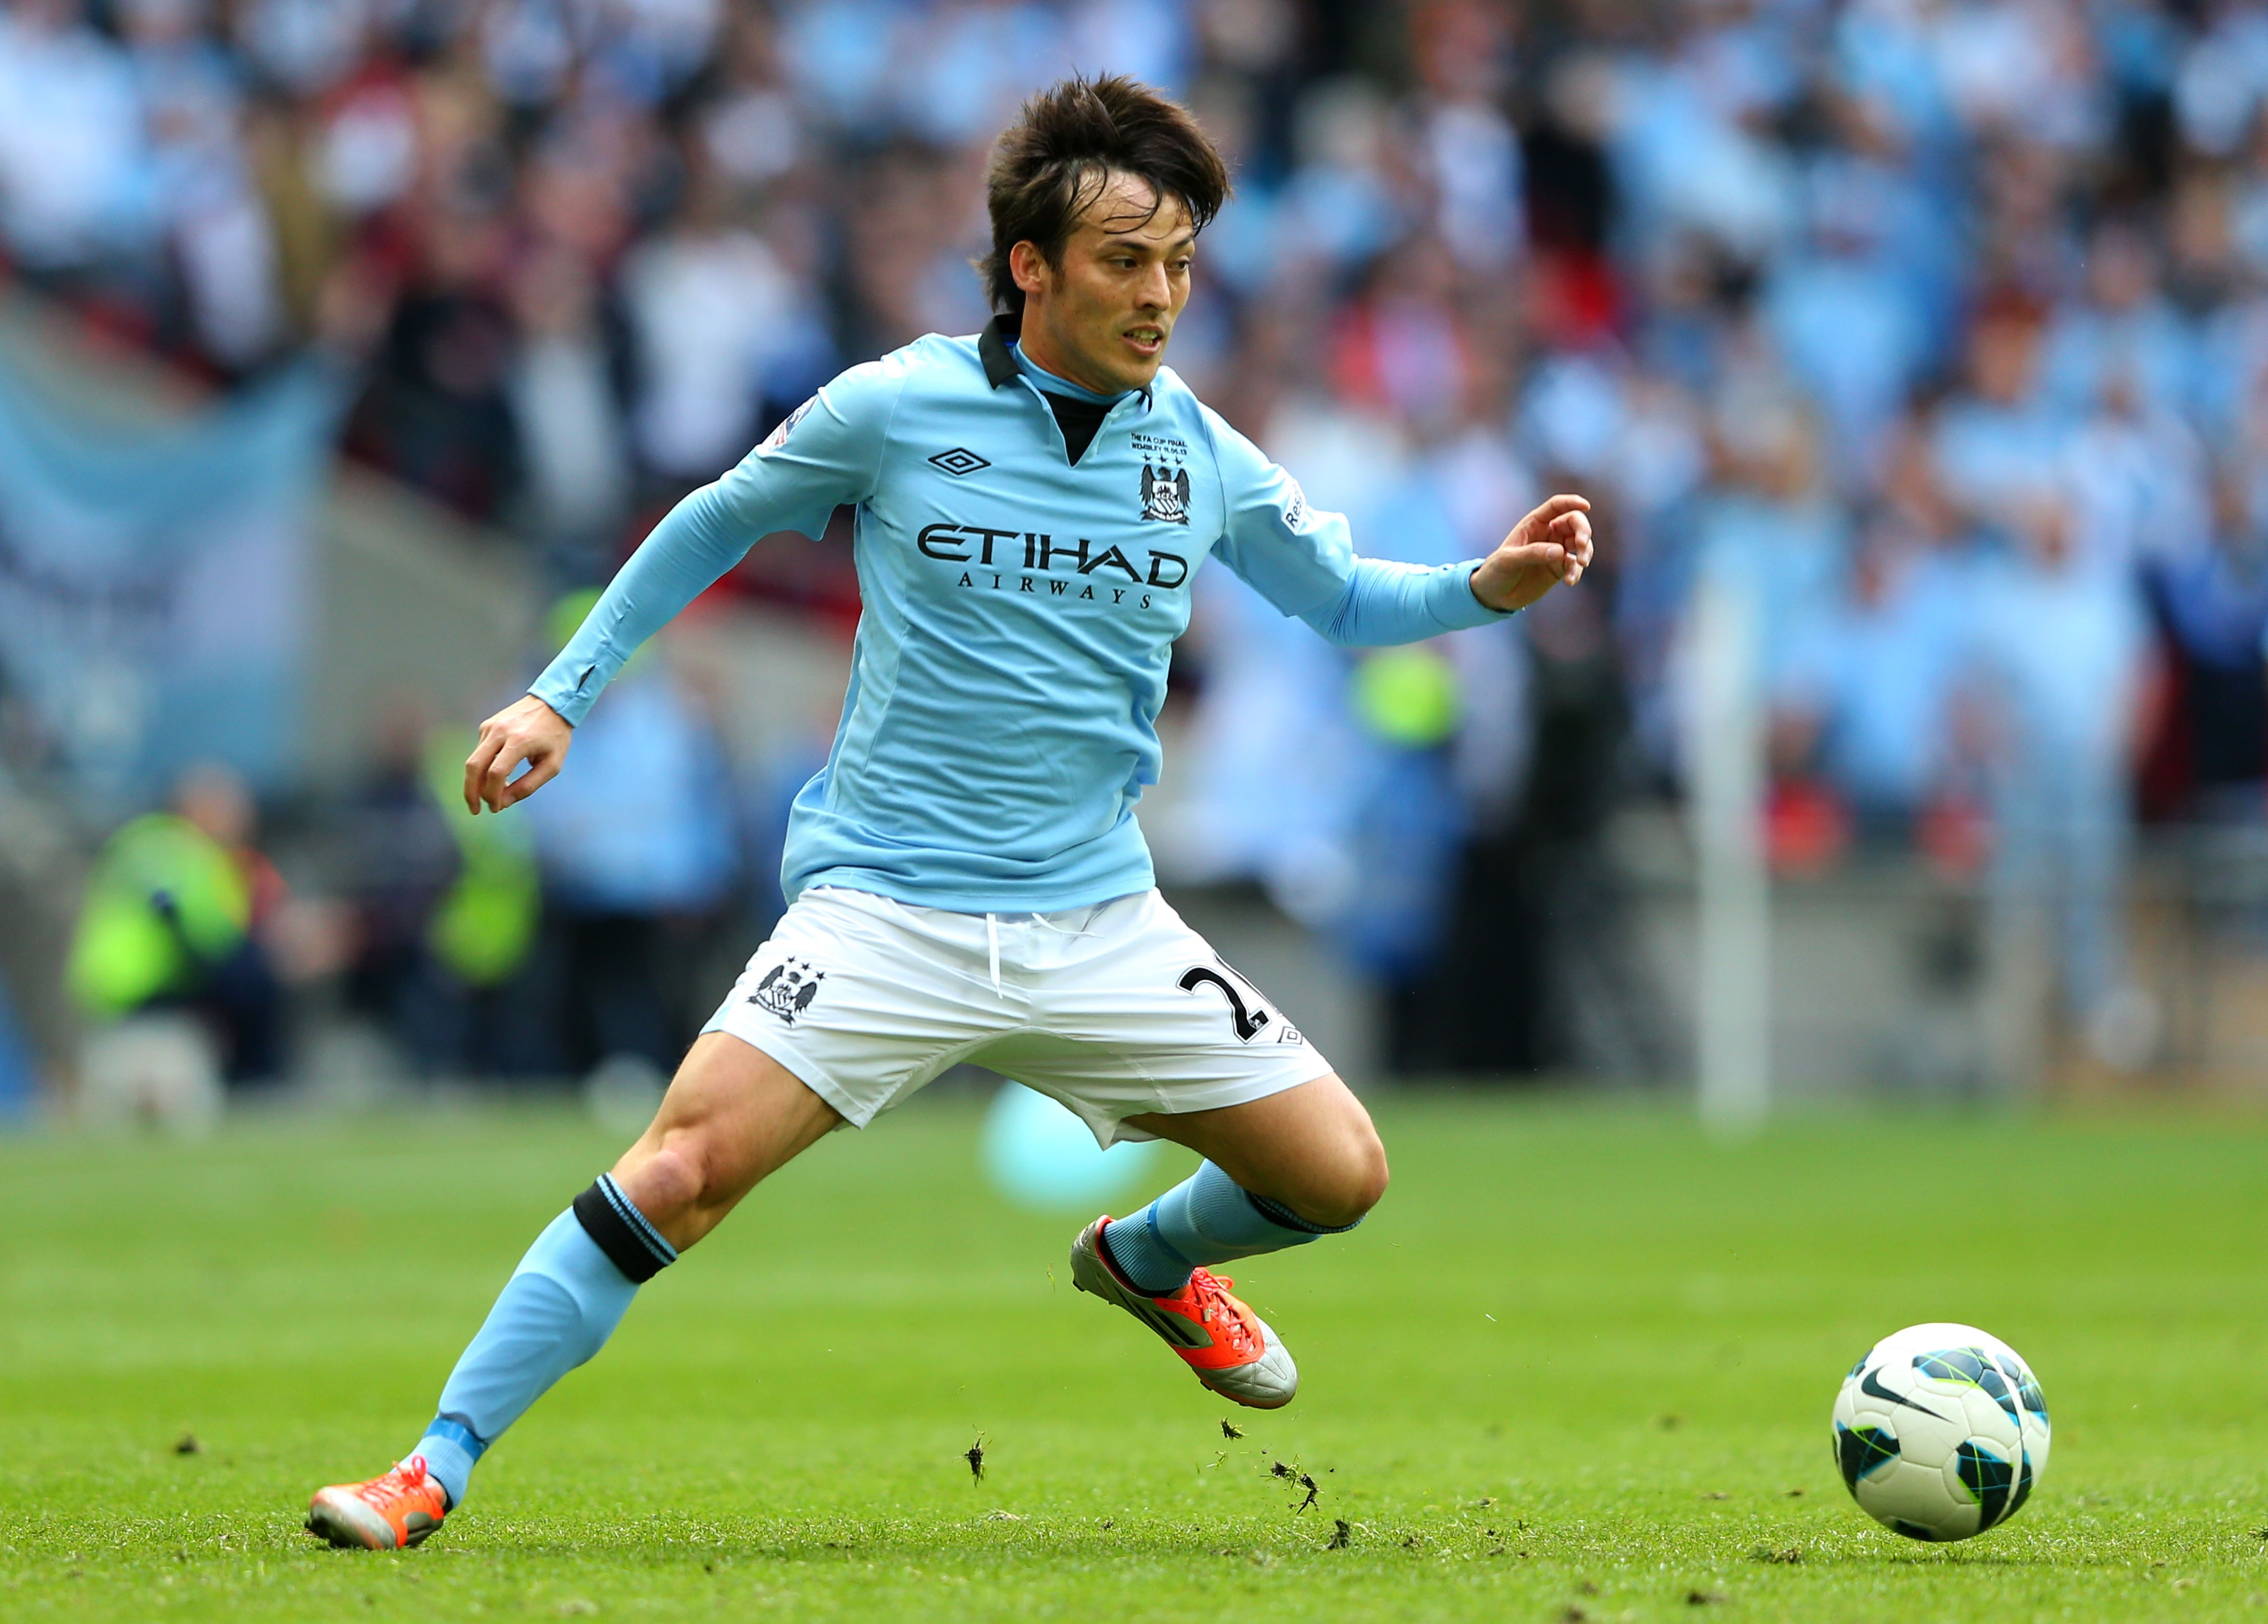 David Silva Wallpapers Images Photos Pictures Backgrounds